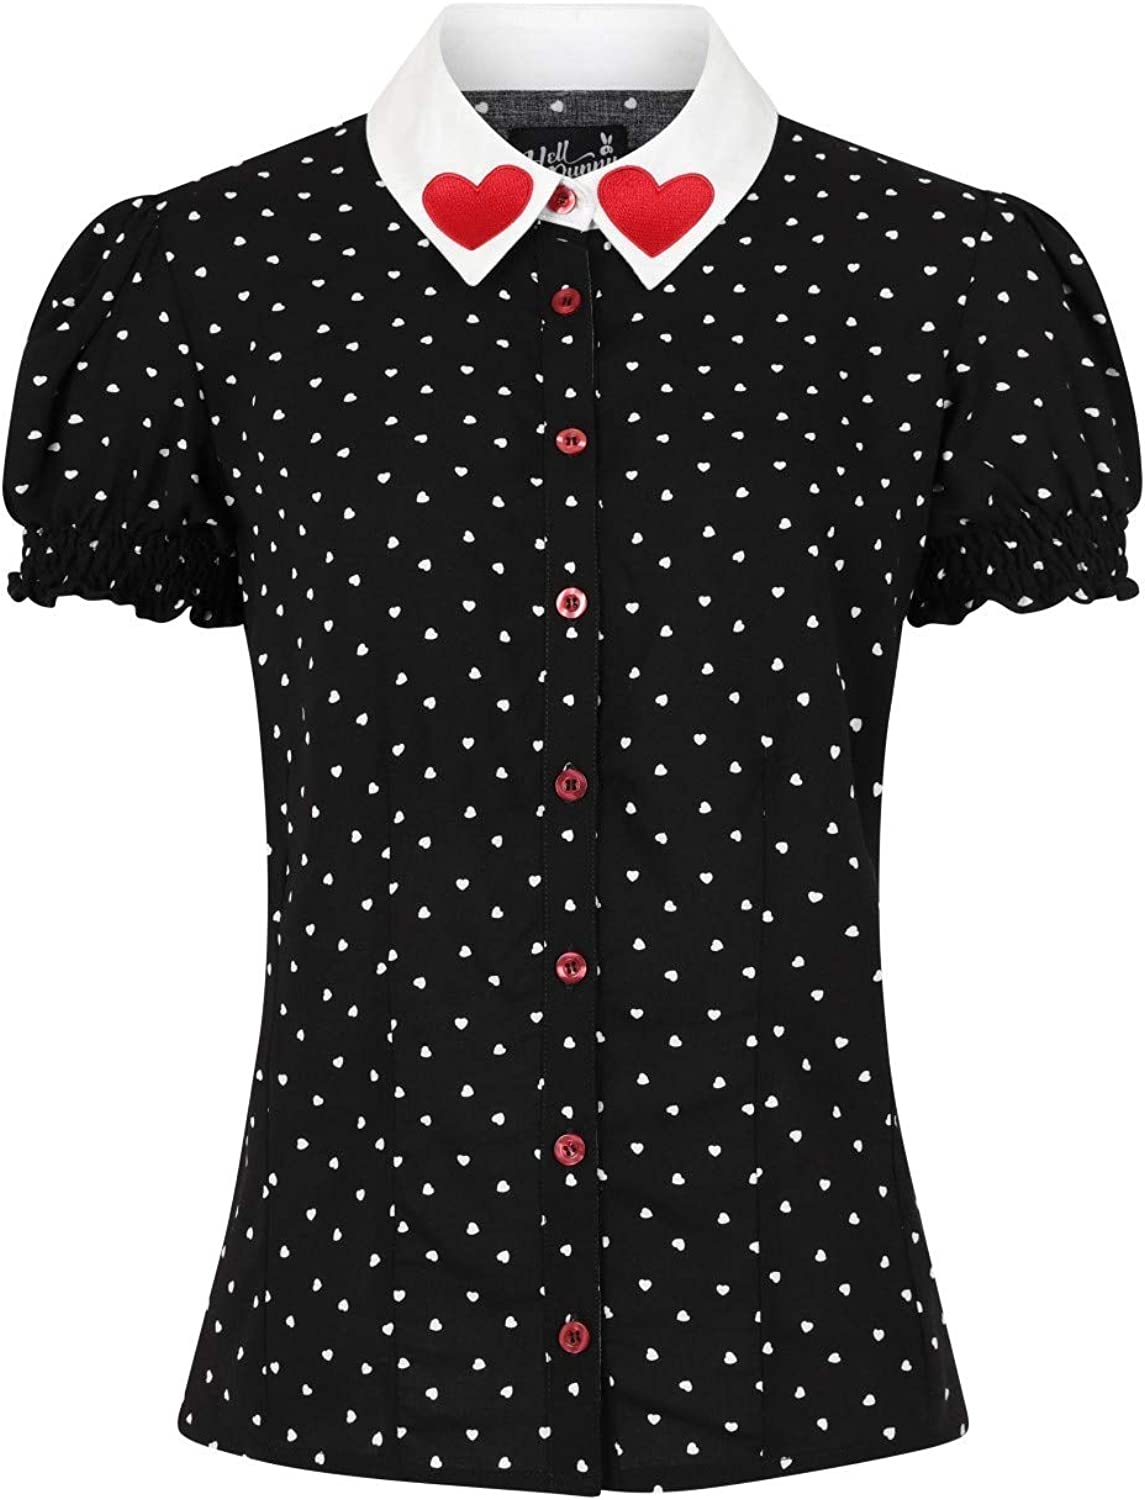 Hell Bunny Allie Popular shop is the lowest price challenge Hearts Max 59% OFF Pinup Blouse 1950's Vintage Retro Valent